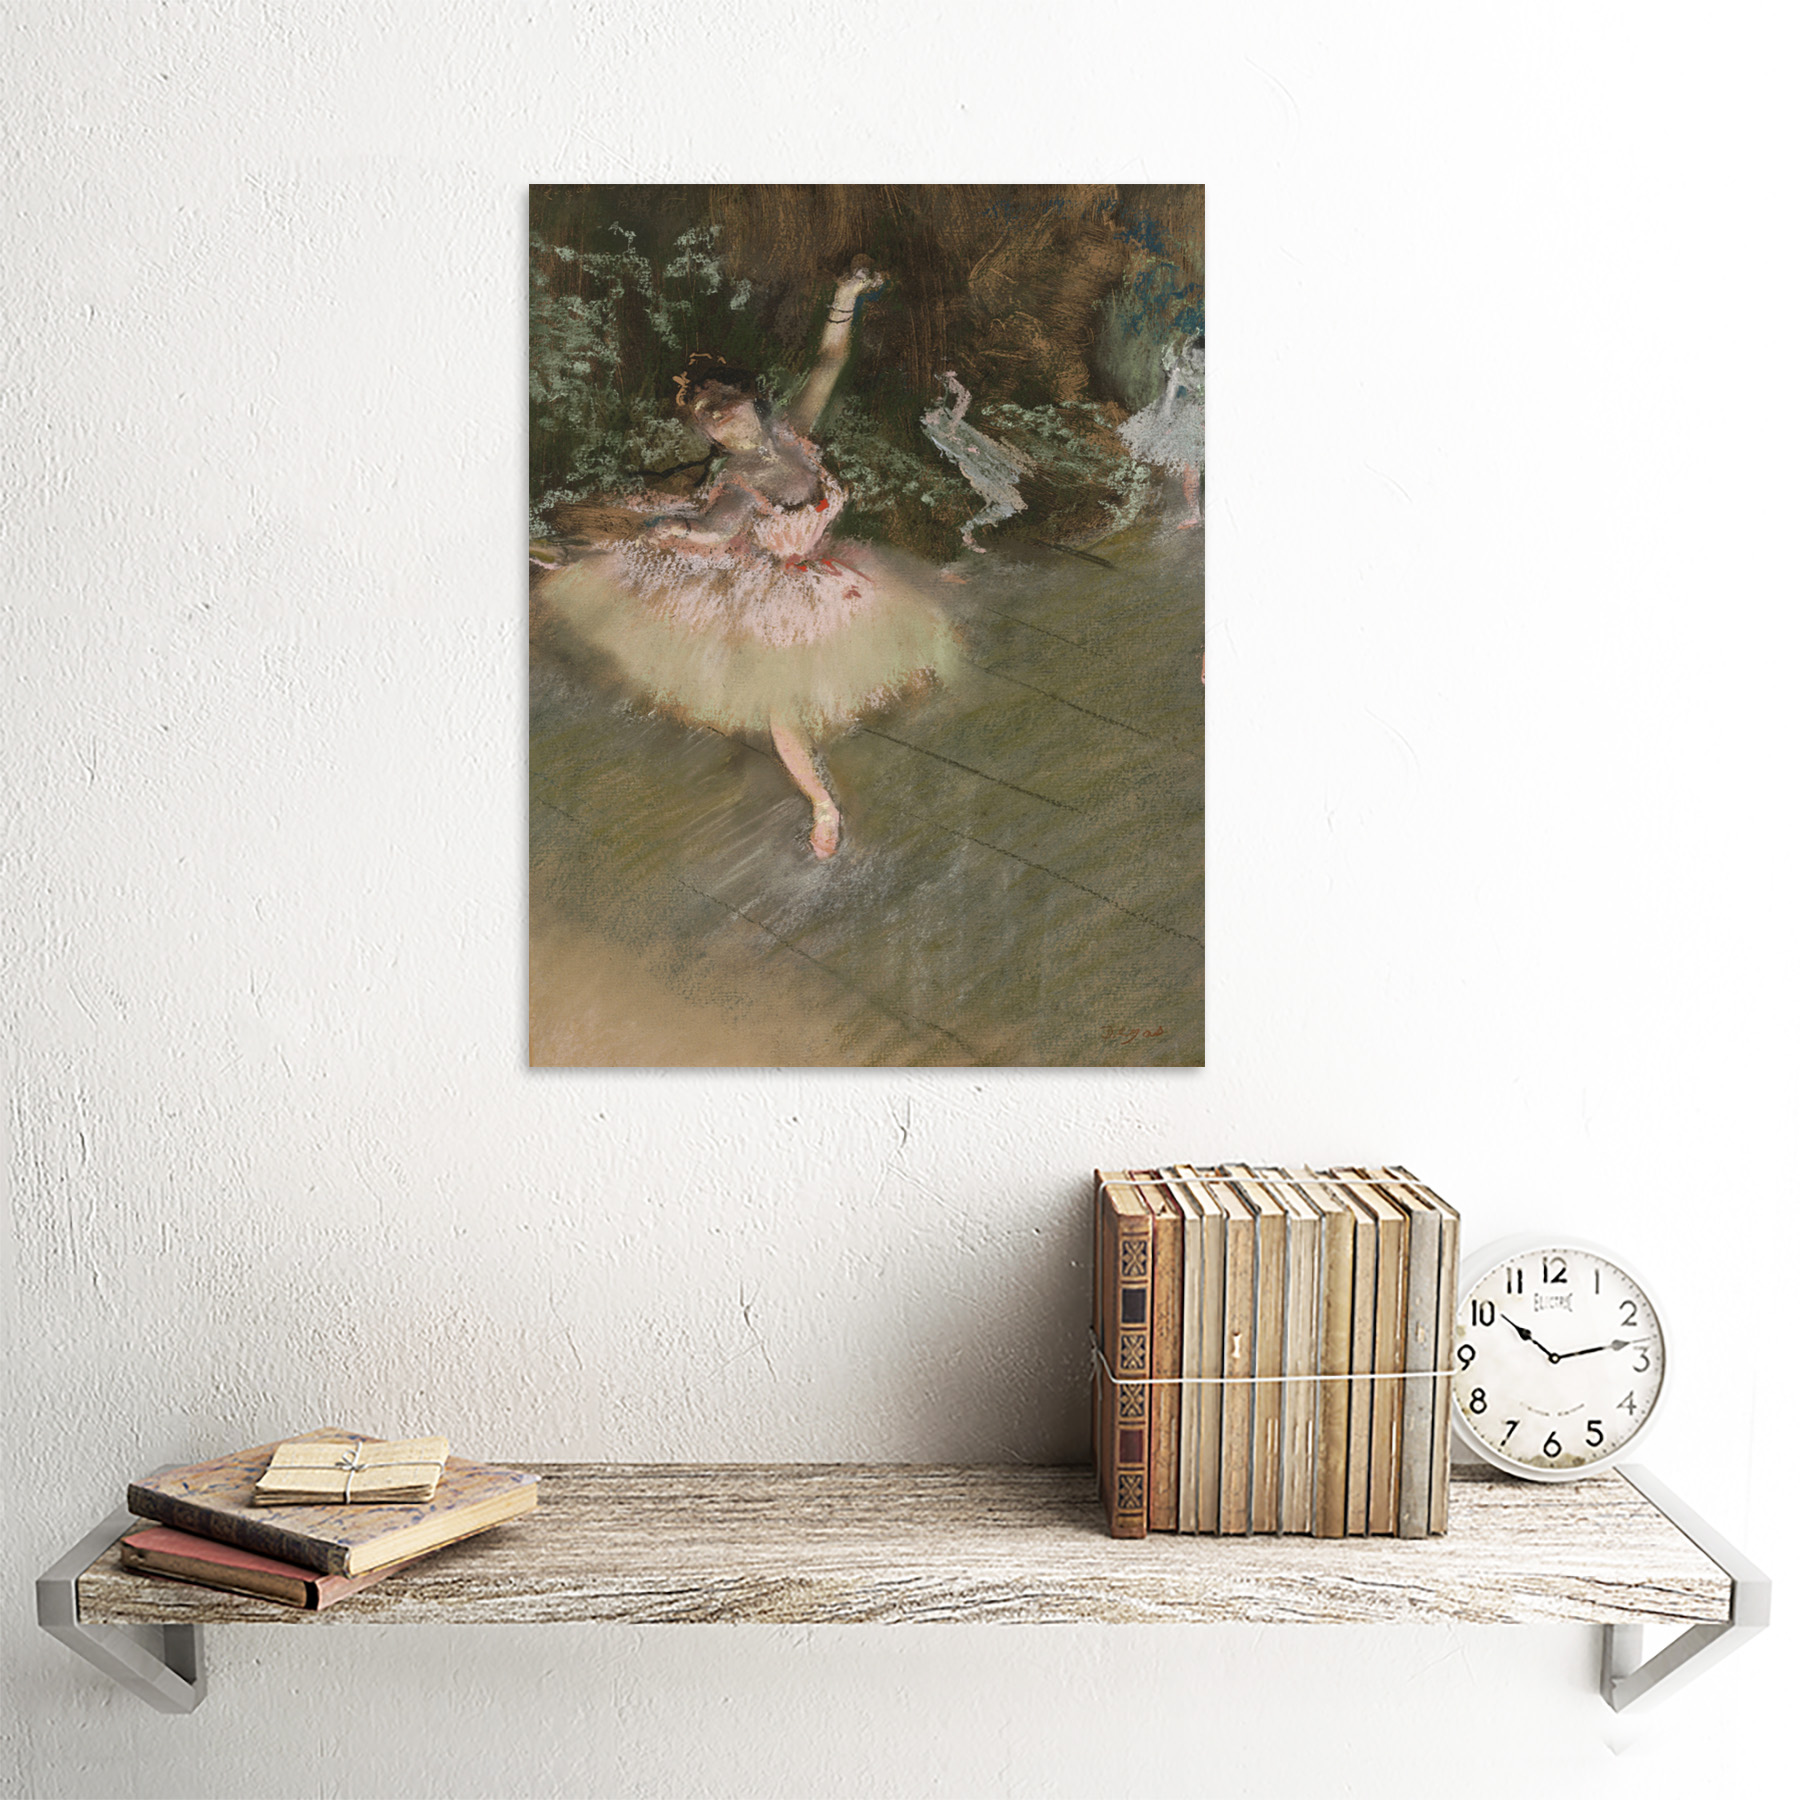 Edgar-Degas-The-Star-Art-Print-Framed-12x16 thumbnail 23